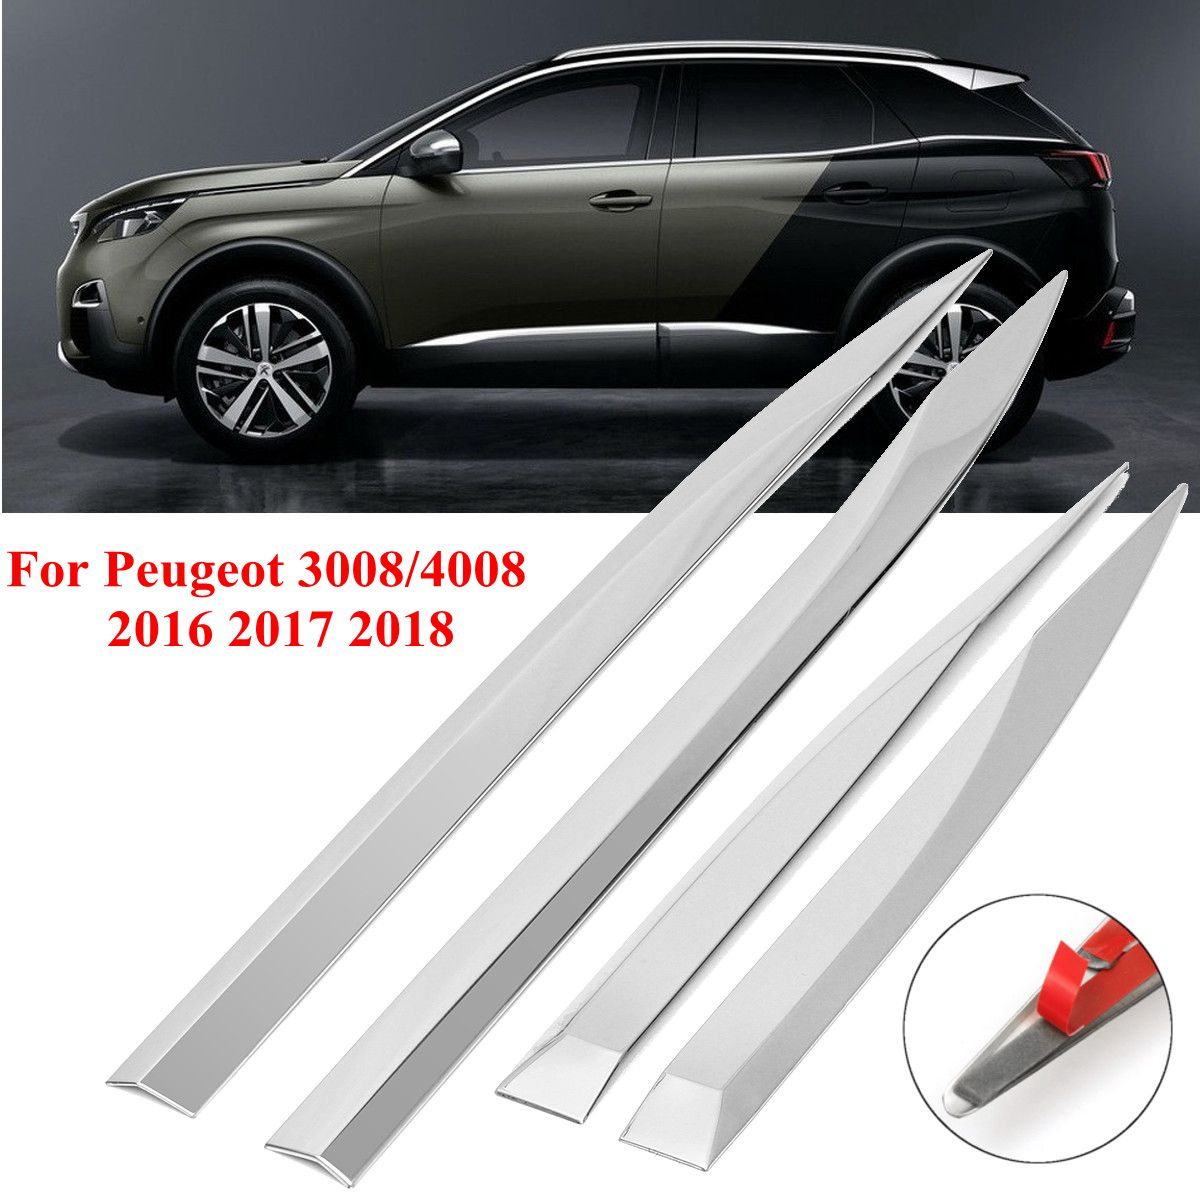 4pcs For Peugeot 3008 4008 2016 2017 2018 Car Door Body Chrome Side Molding Protector Trim